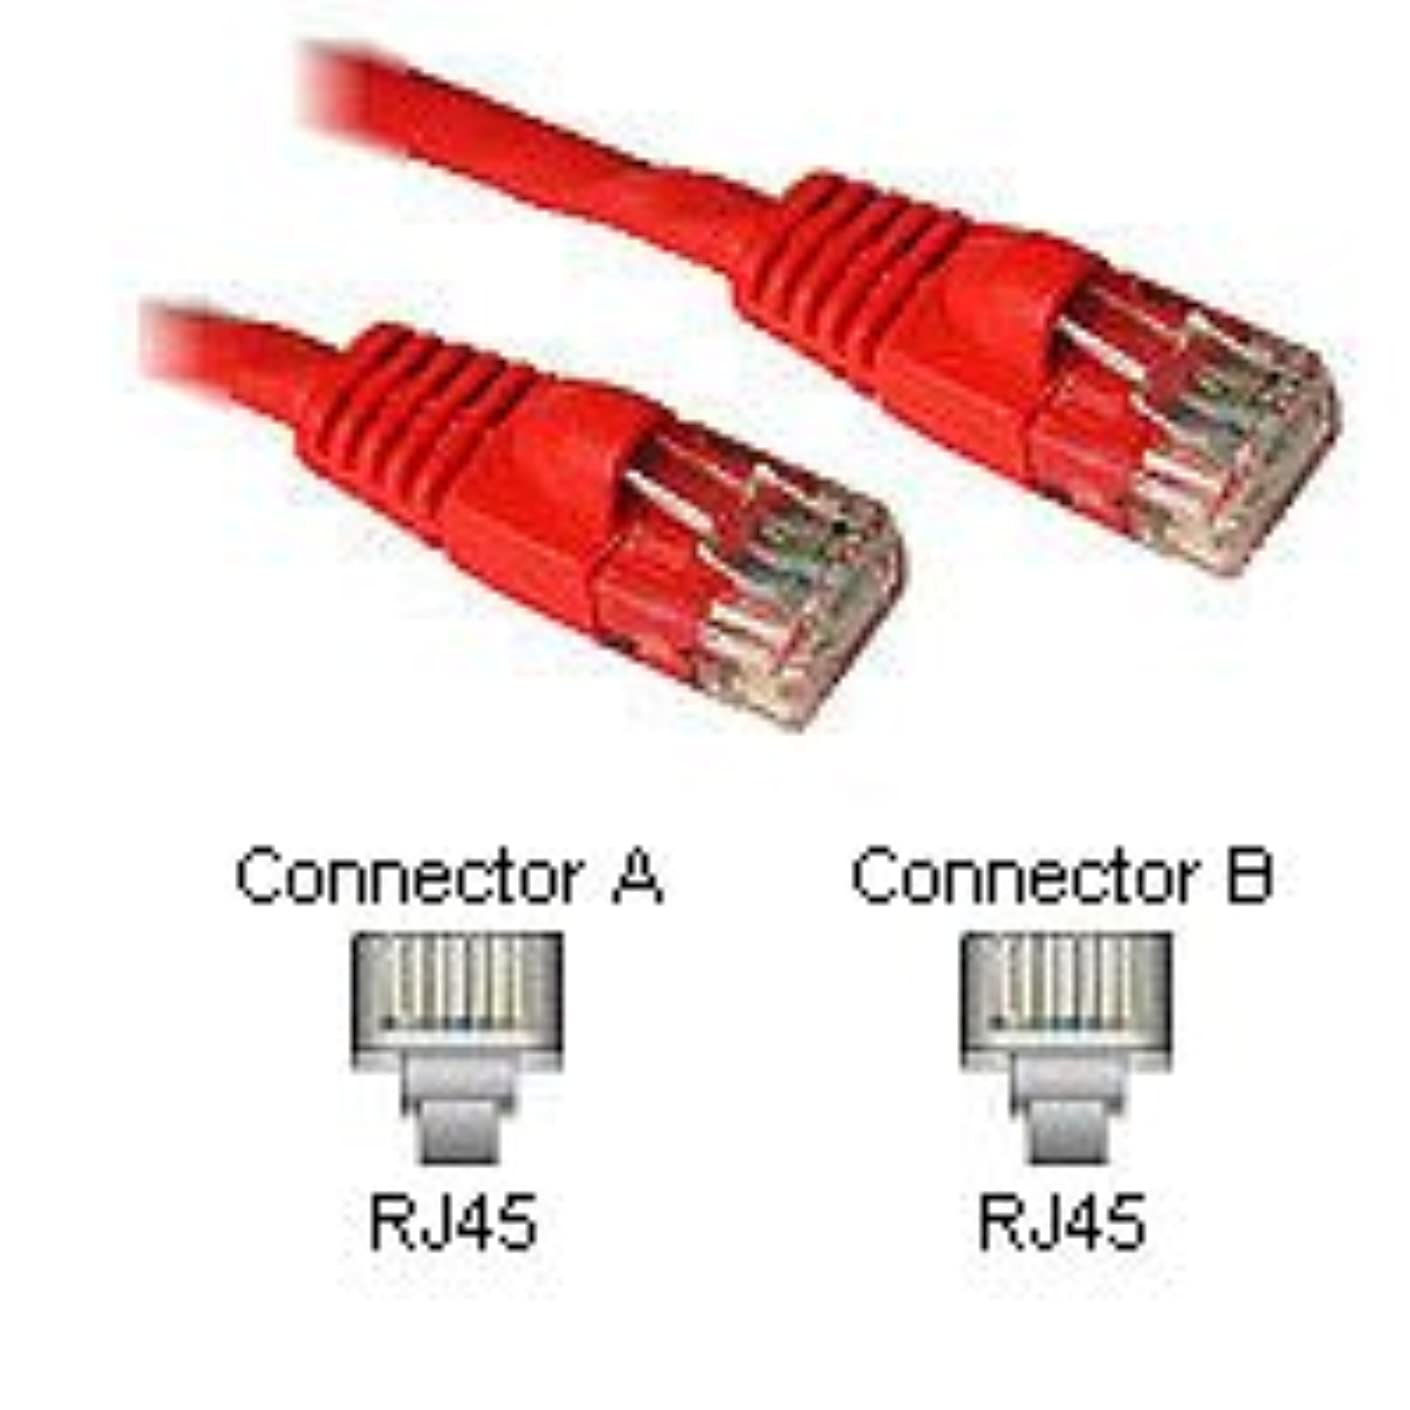 2 Pack of 5Ft Cat5e 350mhz Molded Snagless Style Ethernet Network Patch Cable - Red LL80671. for use with Computers or Hubs or Switches or Patch Panels